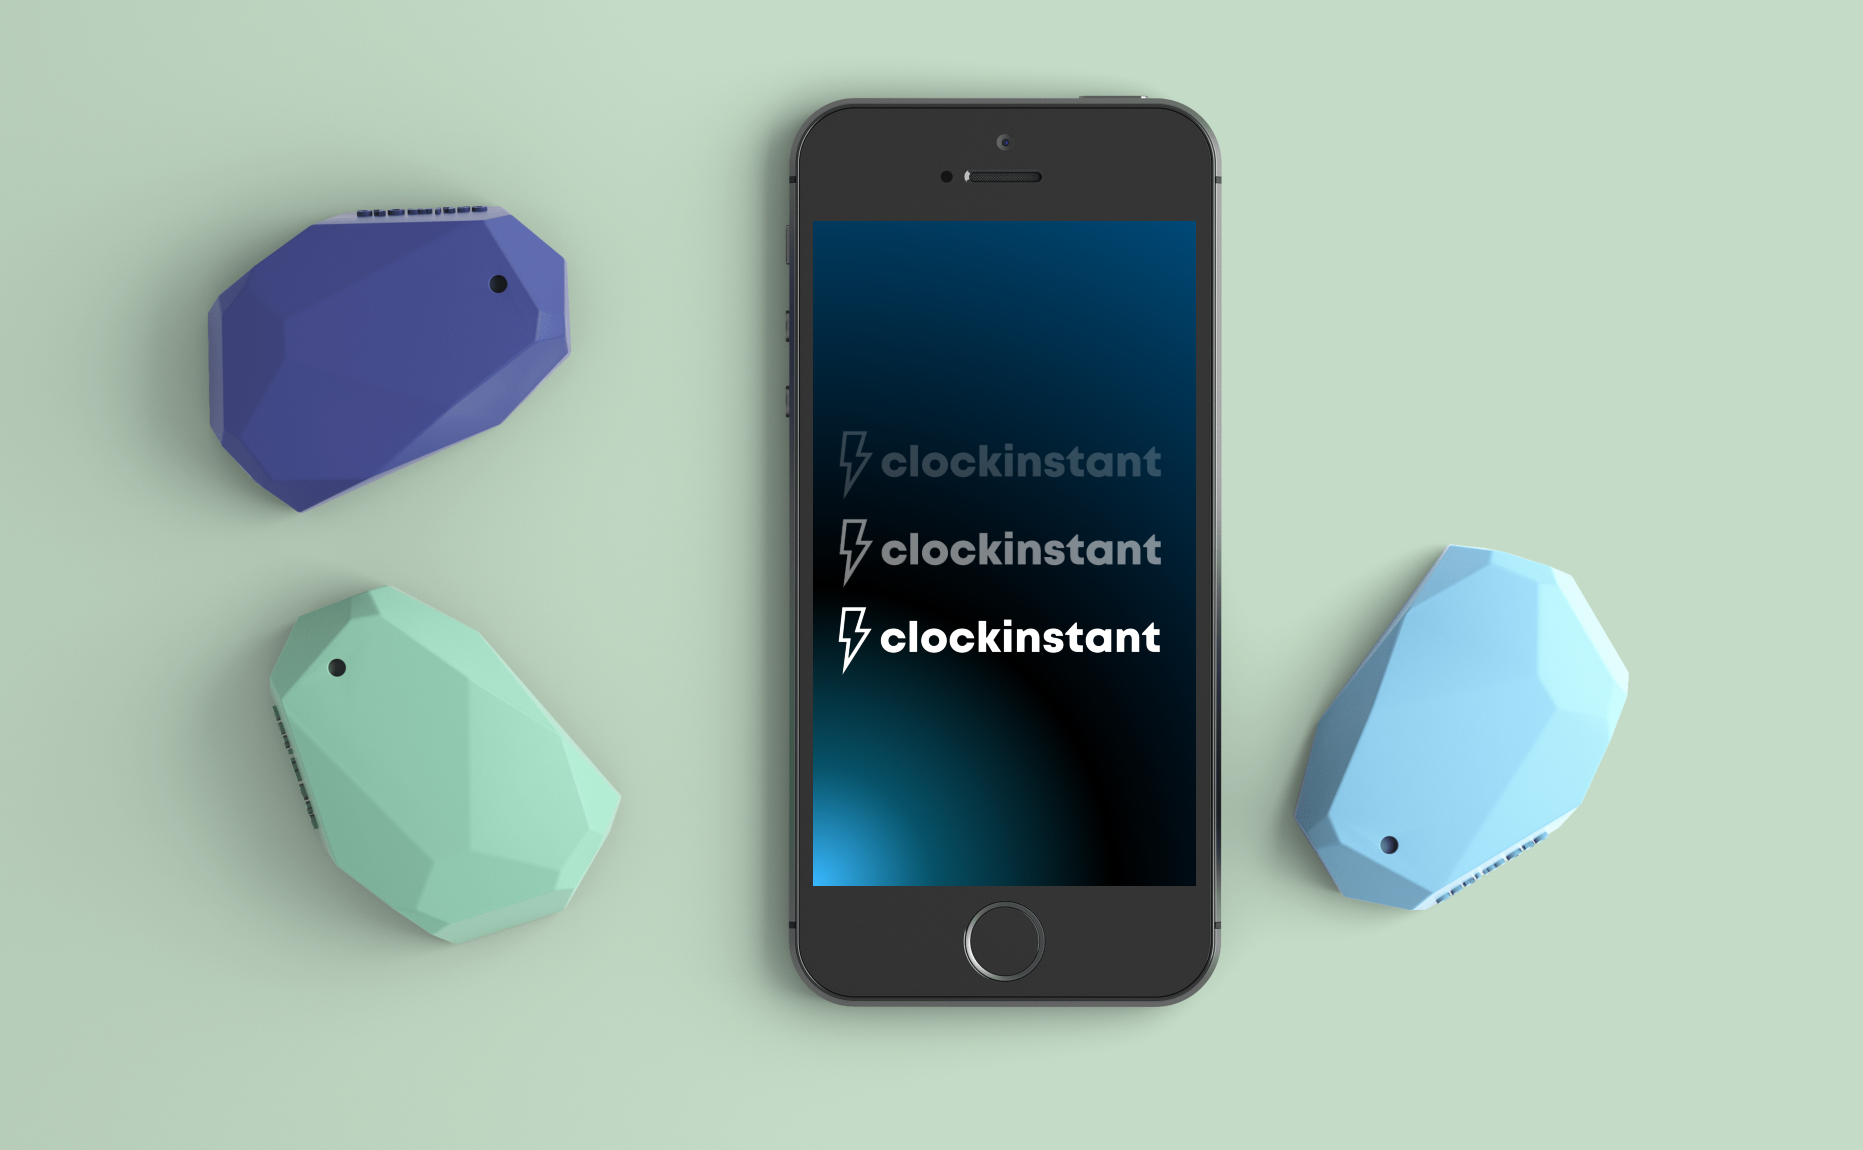 ClockInstant App - This image was uploaded by ClockInstant at 11 Imam Haron Rd Claremont, Cape Town, 7708.